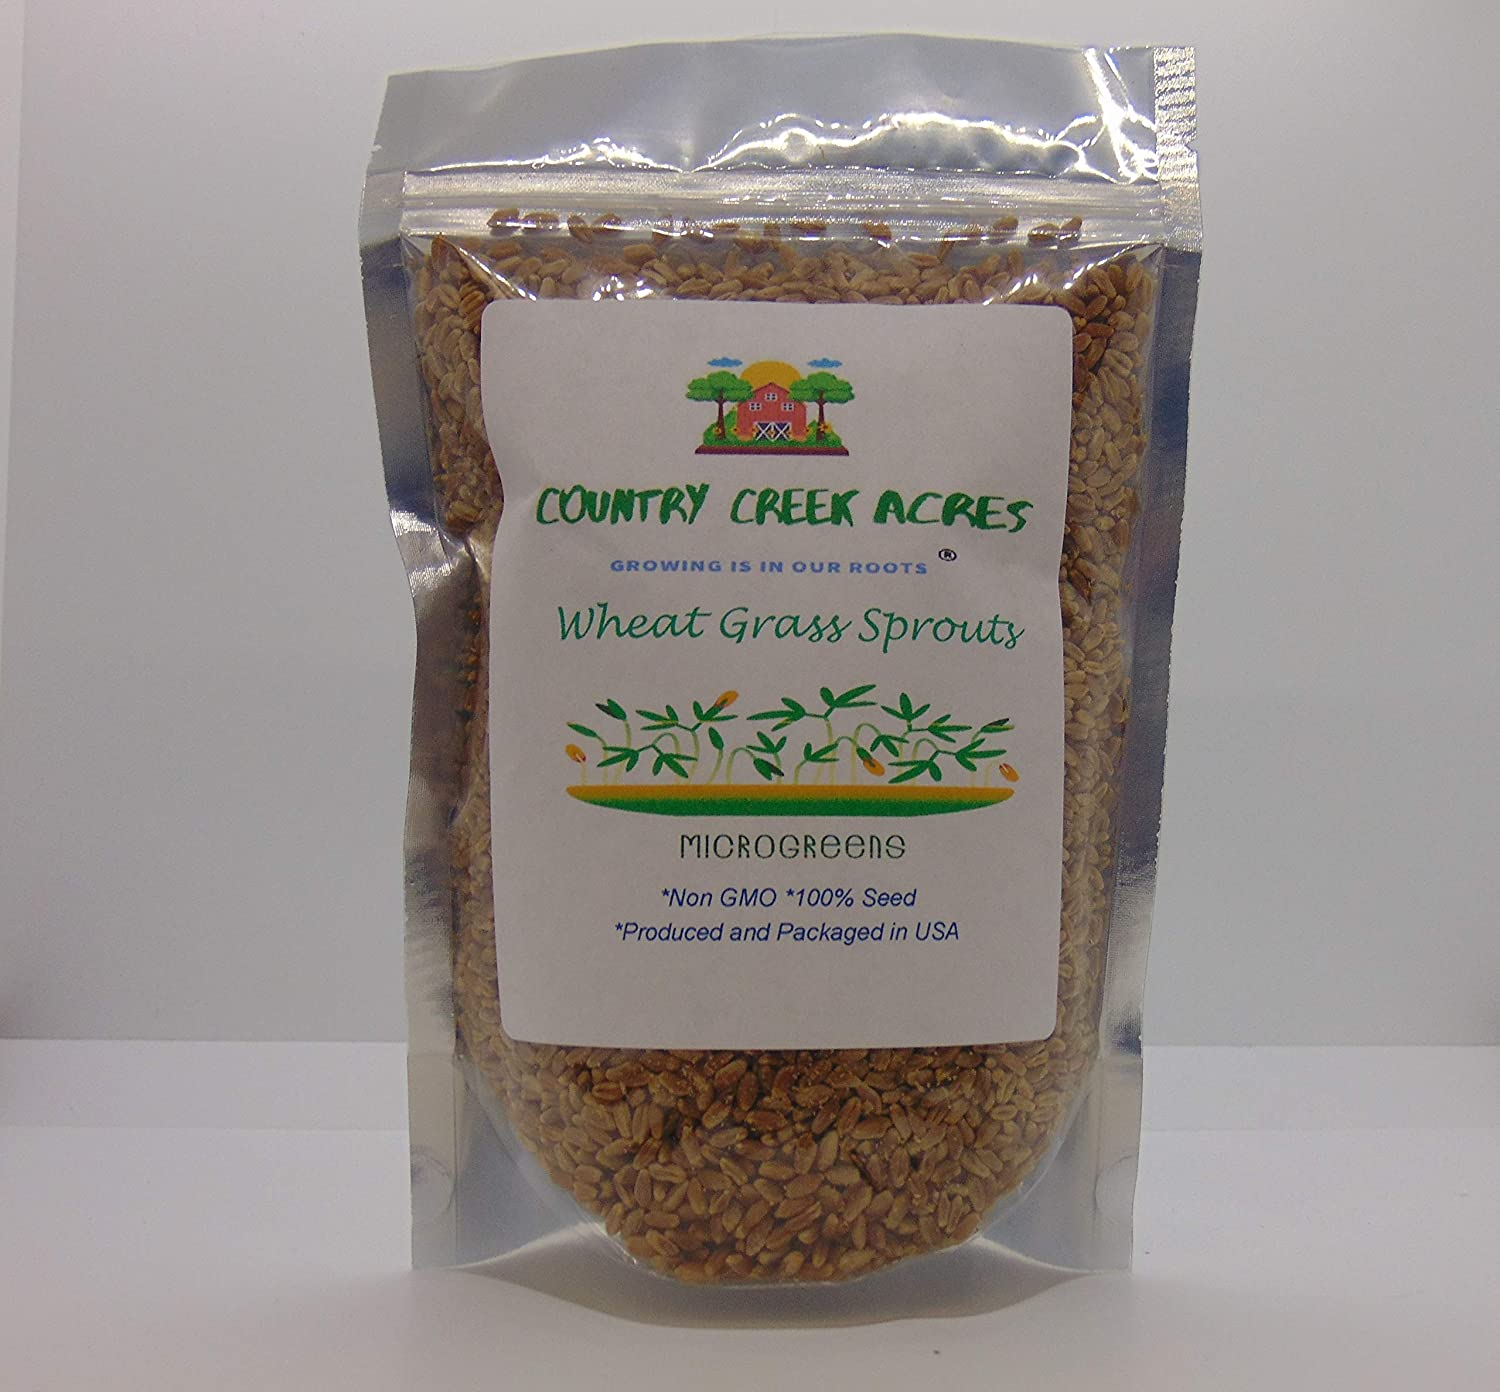 Non-GMO Hard shop Red Wheat Grass Microgreens Super popular specialty store Sprouts 2 Sprouting -